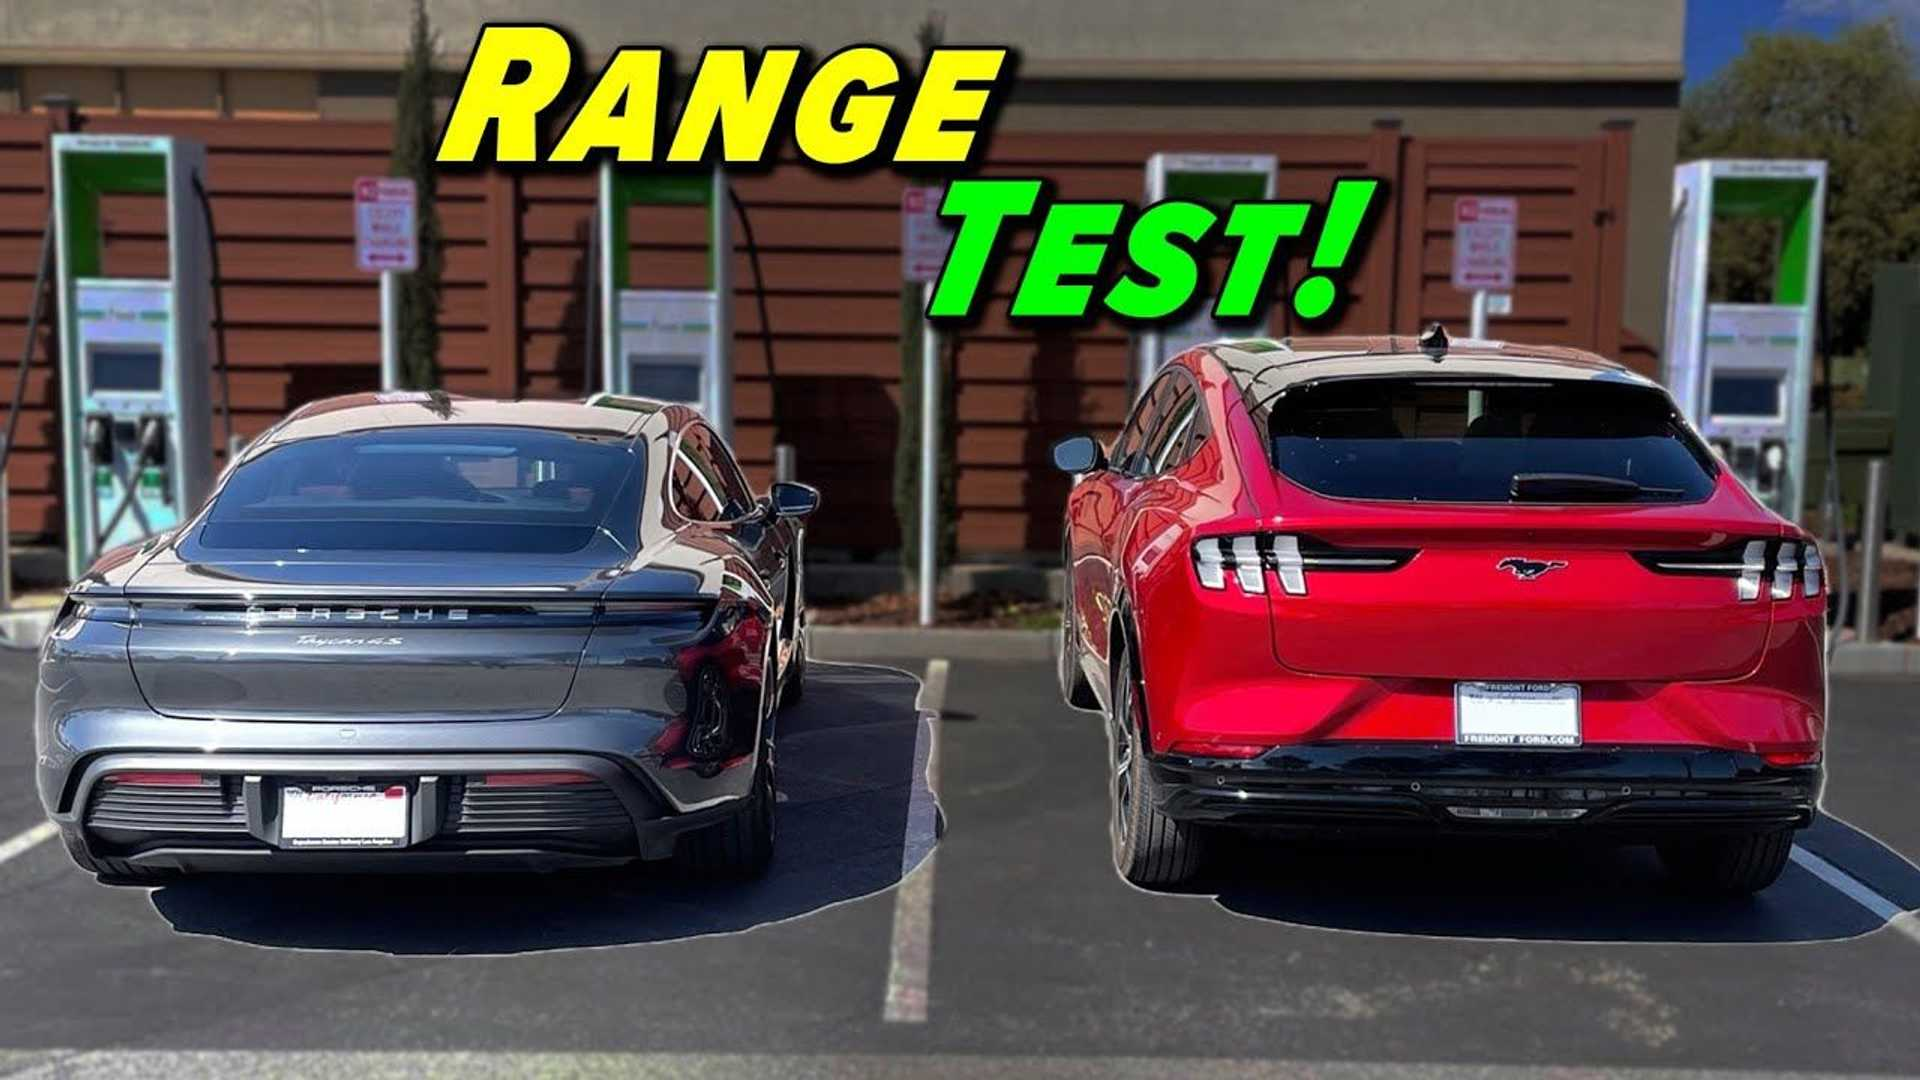 Porsche Taycan And Ford Mustang Mach-E Range Tested Side-By-Side